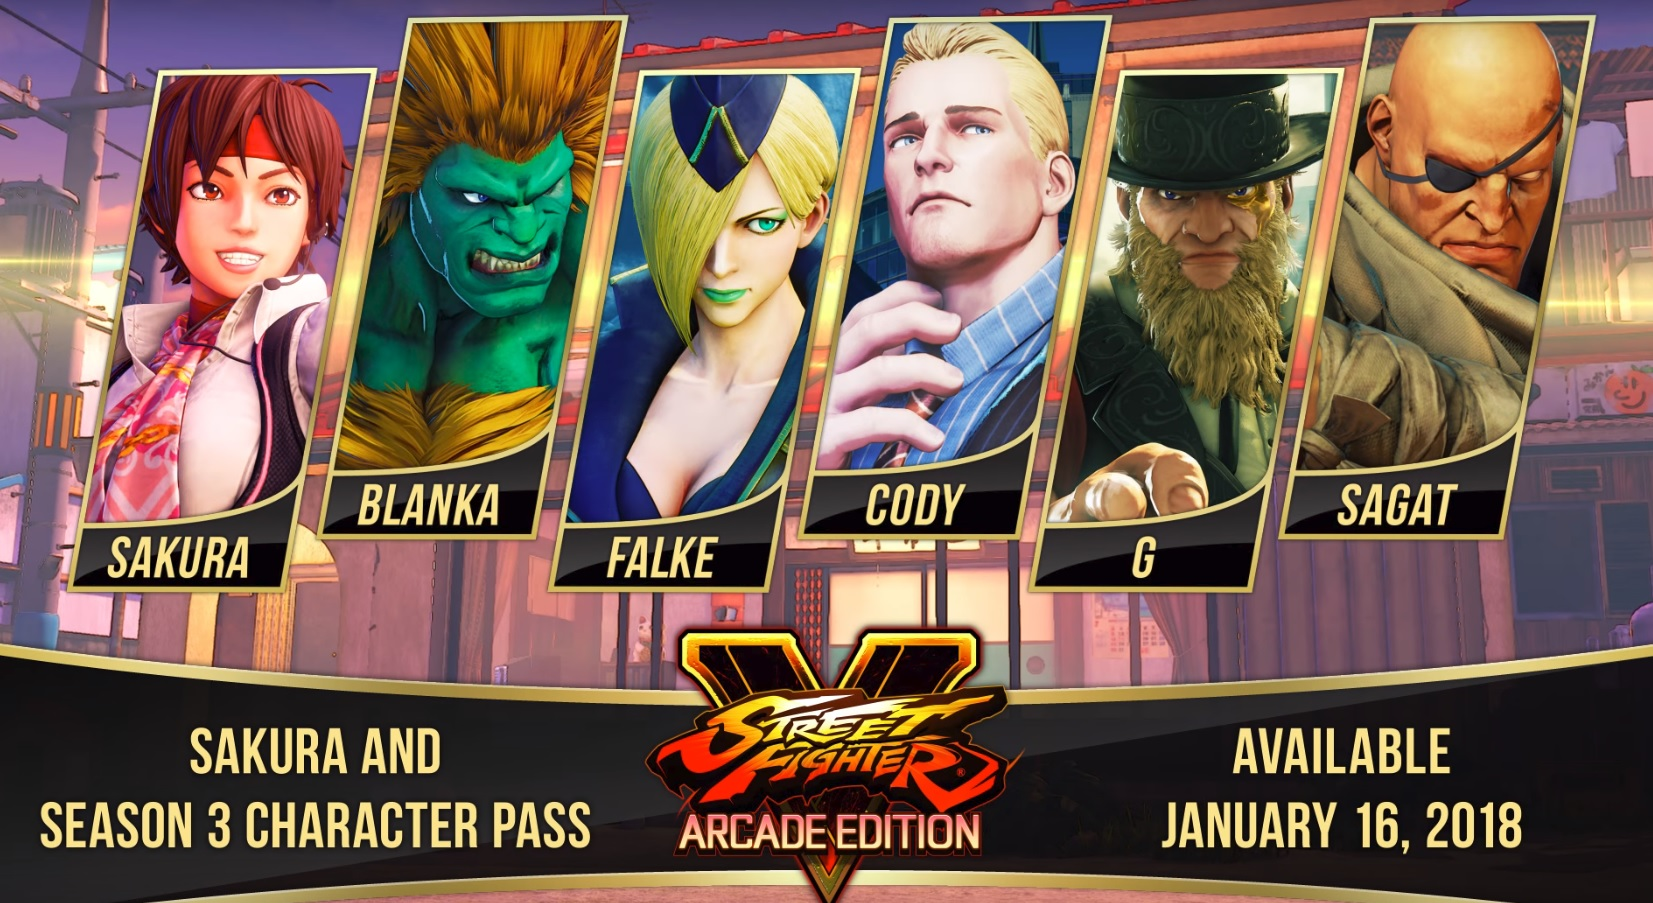 Street Fighter 5 Arcade Edition Adds Sakura Blanka And Sagat For